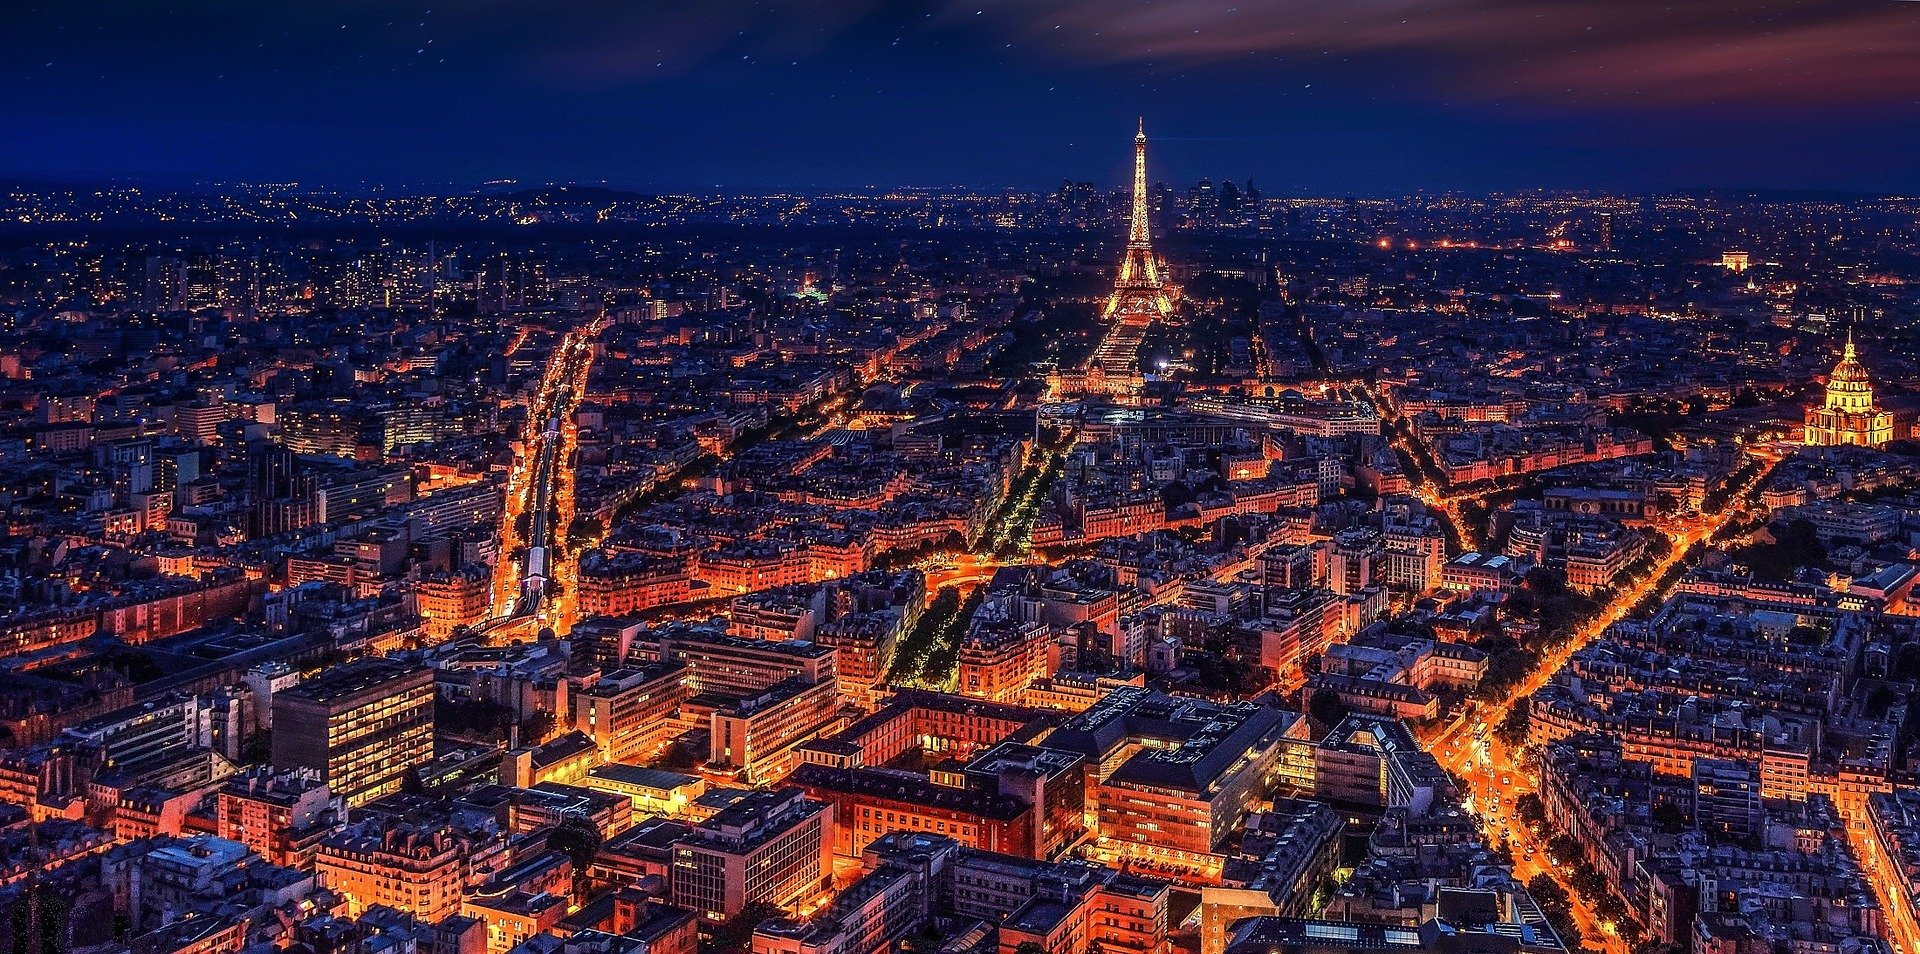 Paris, France at night - photo by Walkerssk under Pixabay License